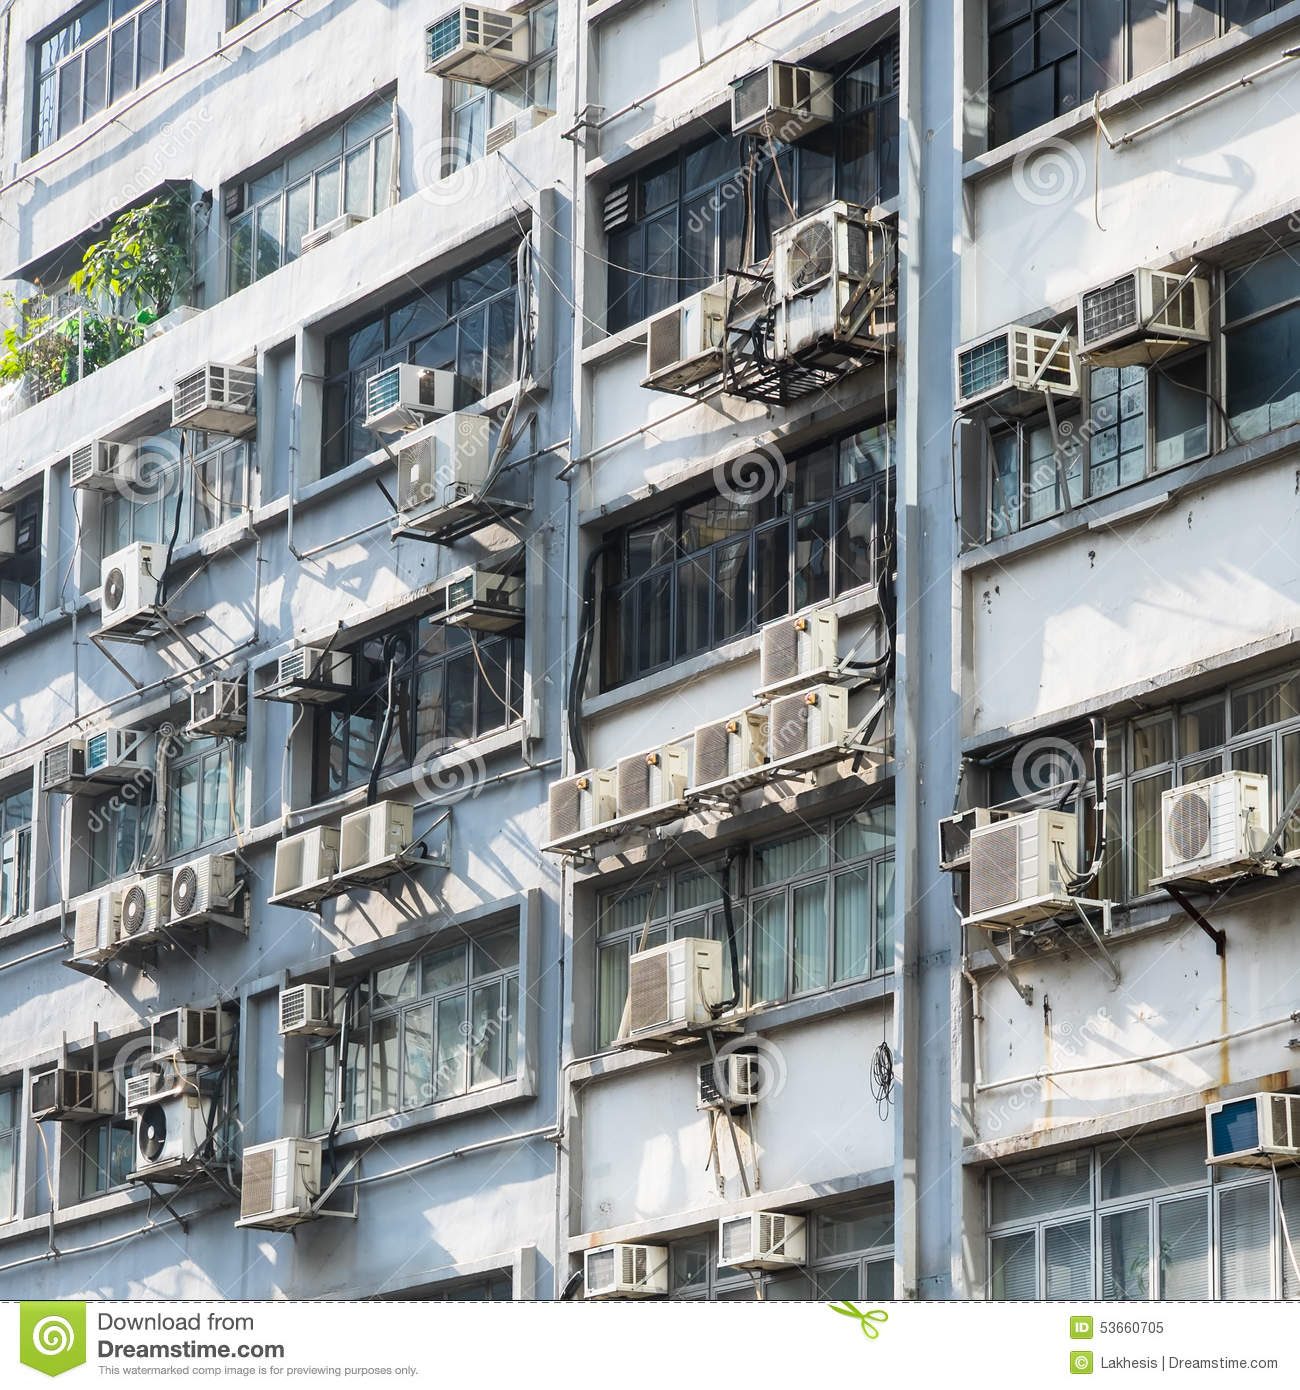 Hong Kong Apartments: Apartment Building In Hong Kong. Abstract City Background